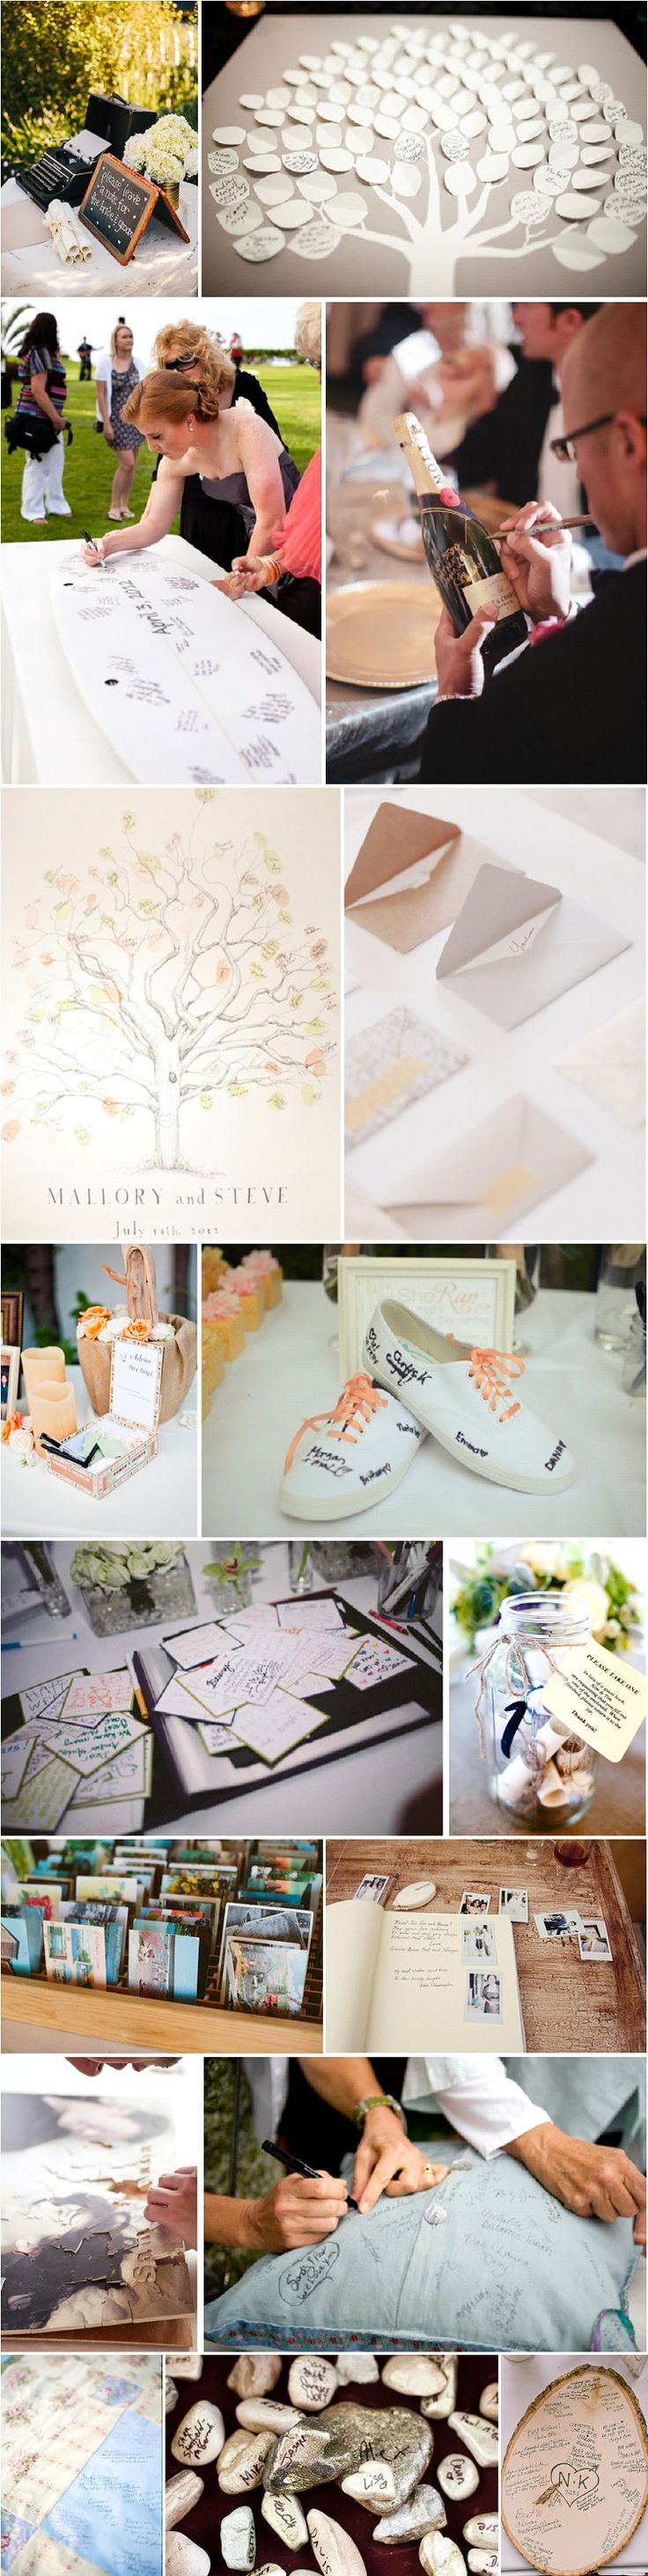 137 Best Wedding Images On Pinterest Dream Martha Ivory Top Leux Studio L Organisation Mariage Un Livre Dor Original